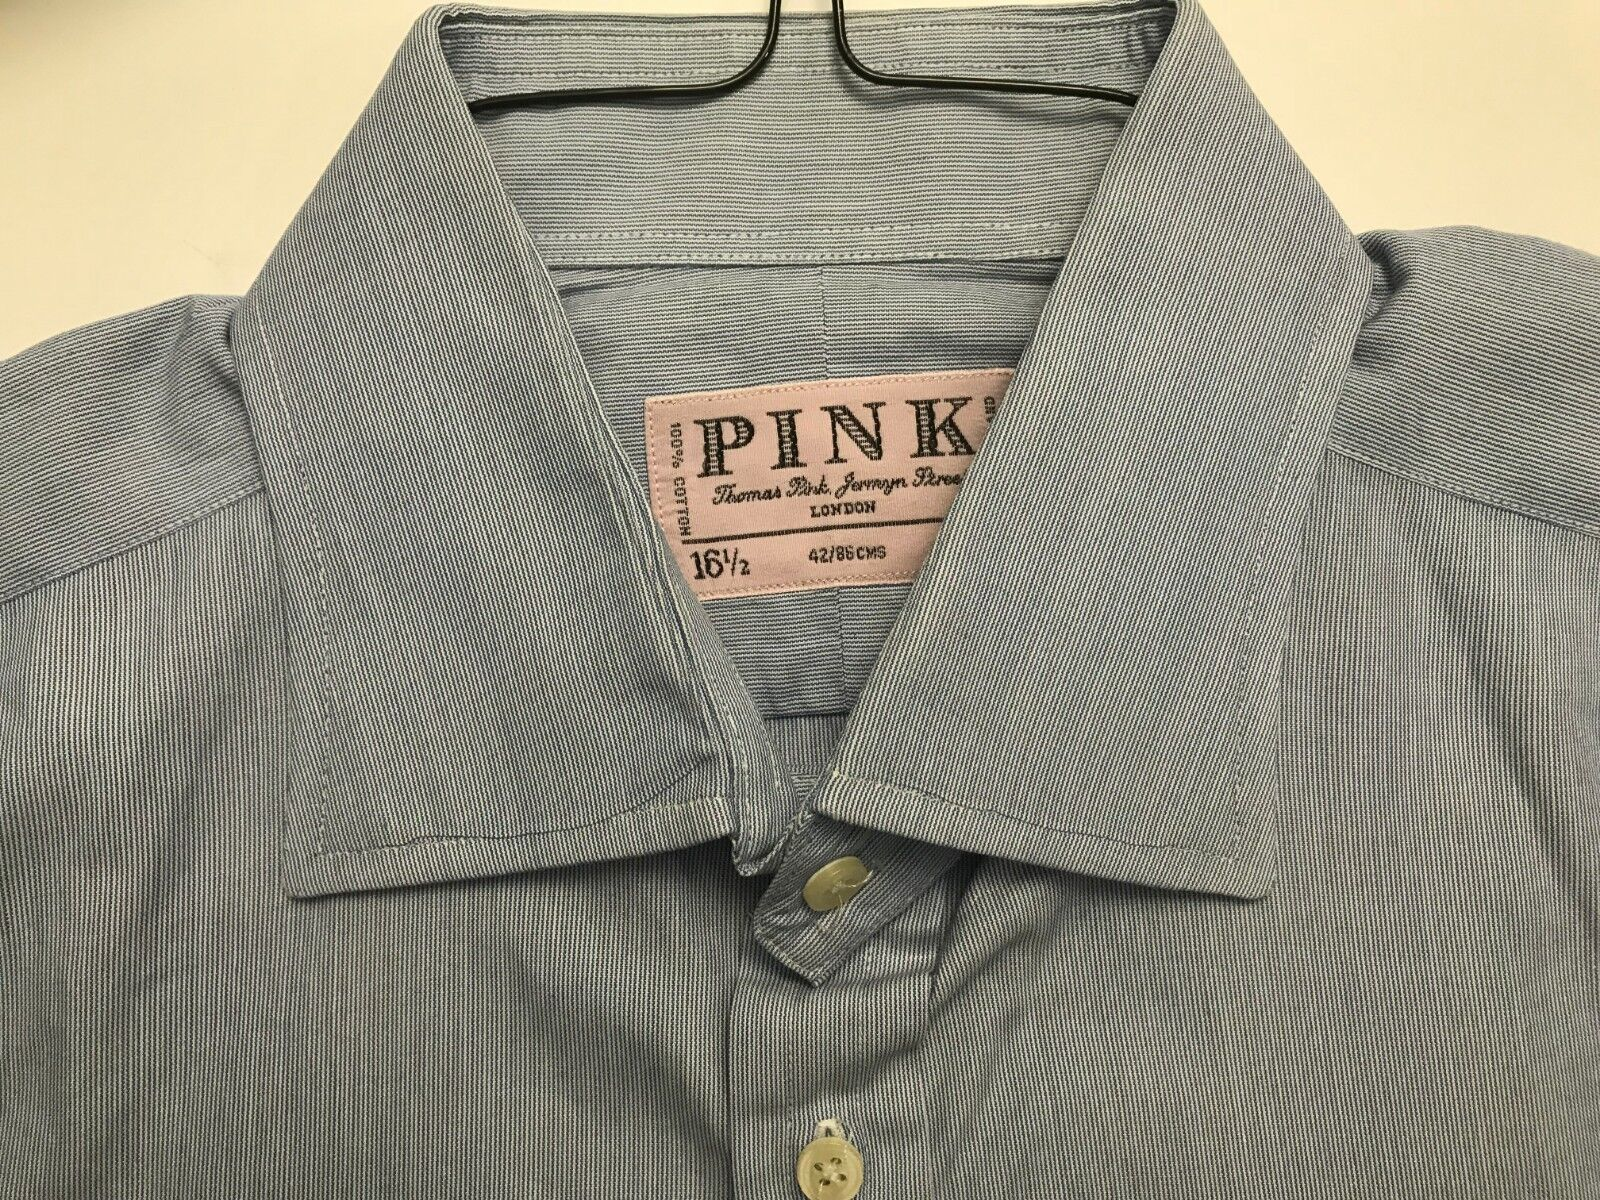 Thomas Pink London Blue Striped 100 Cotton Dress Shirt Mint Cond Sz